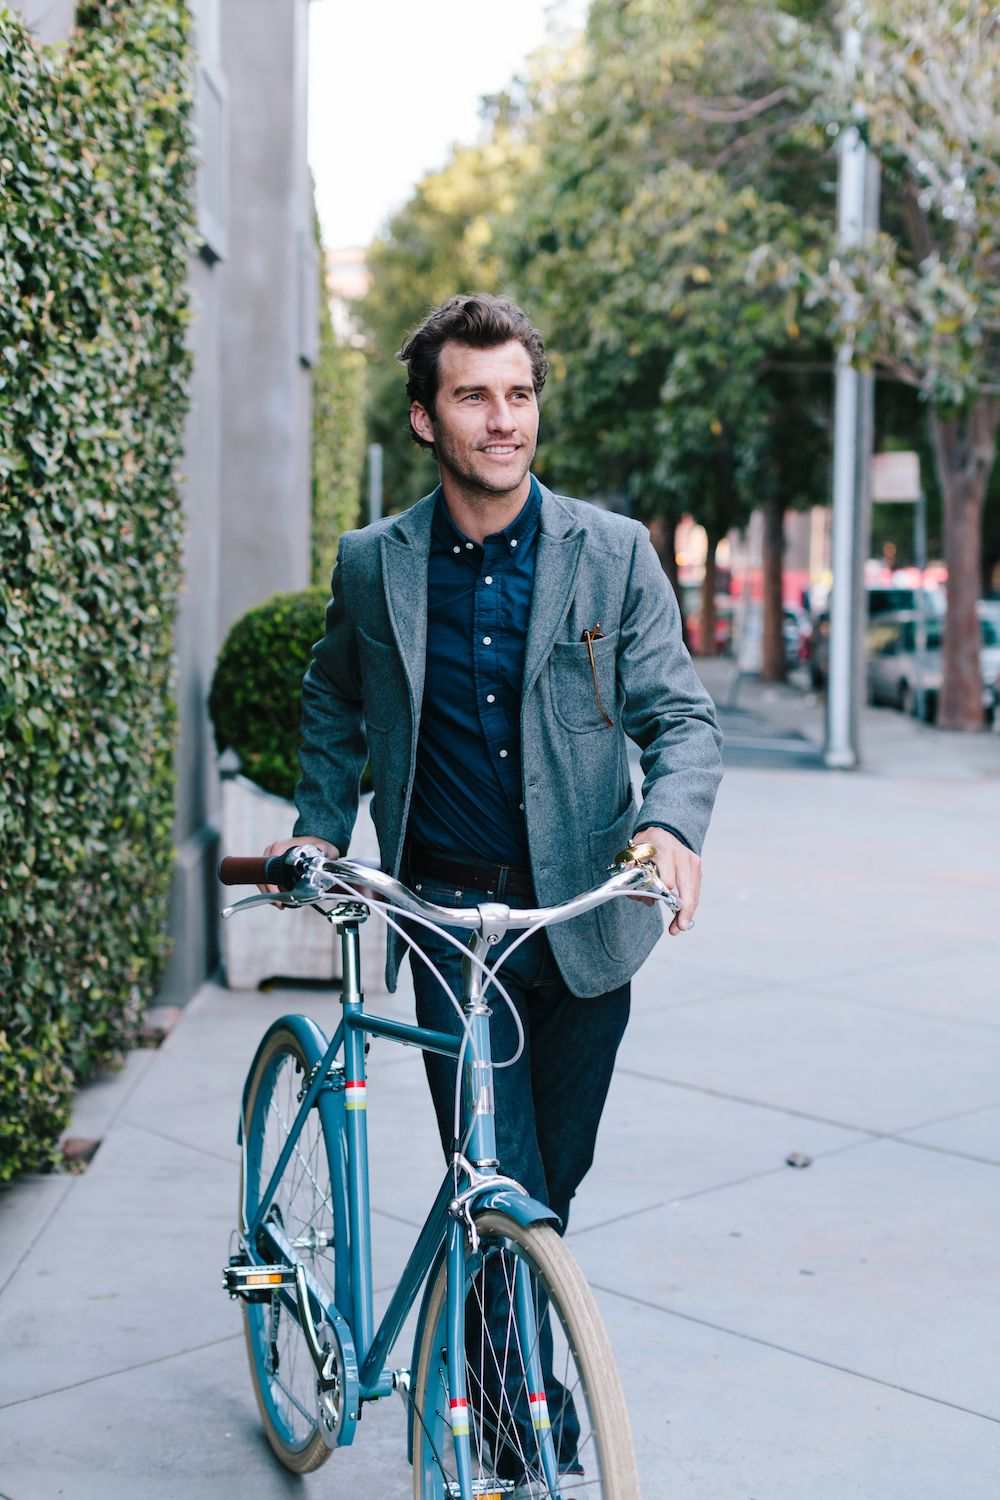 ready to take on the bicycle commute to work with the versatile steel city commuter bike